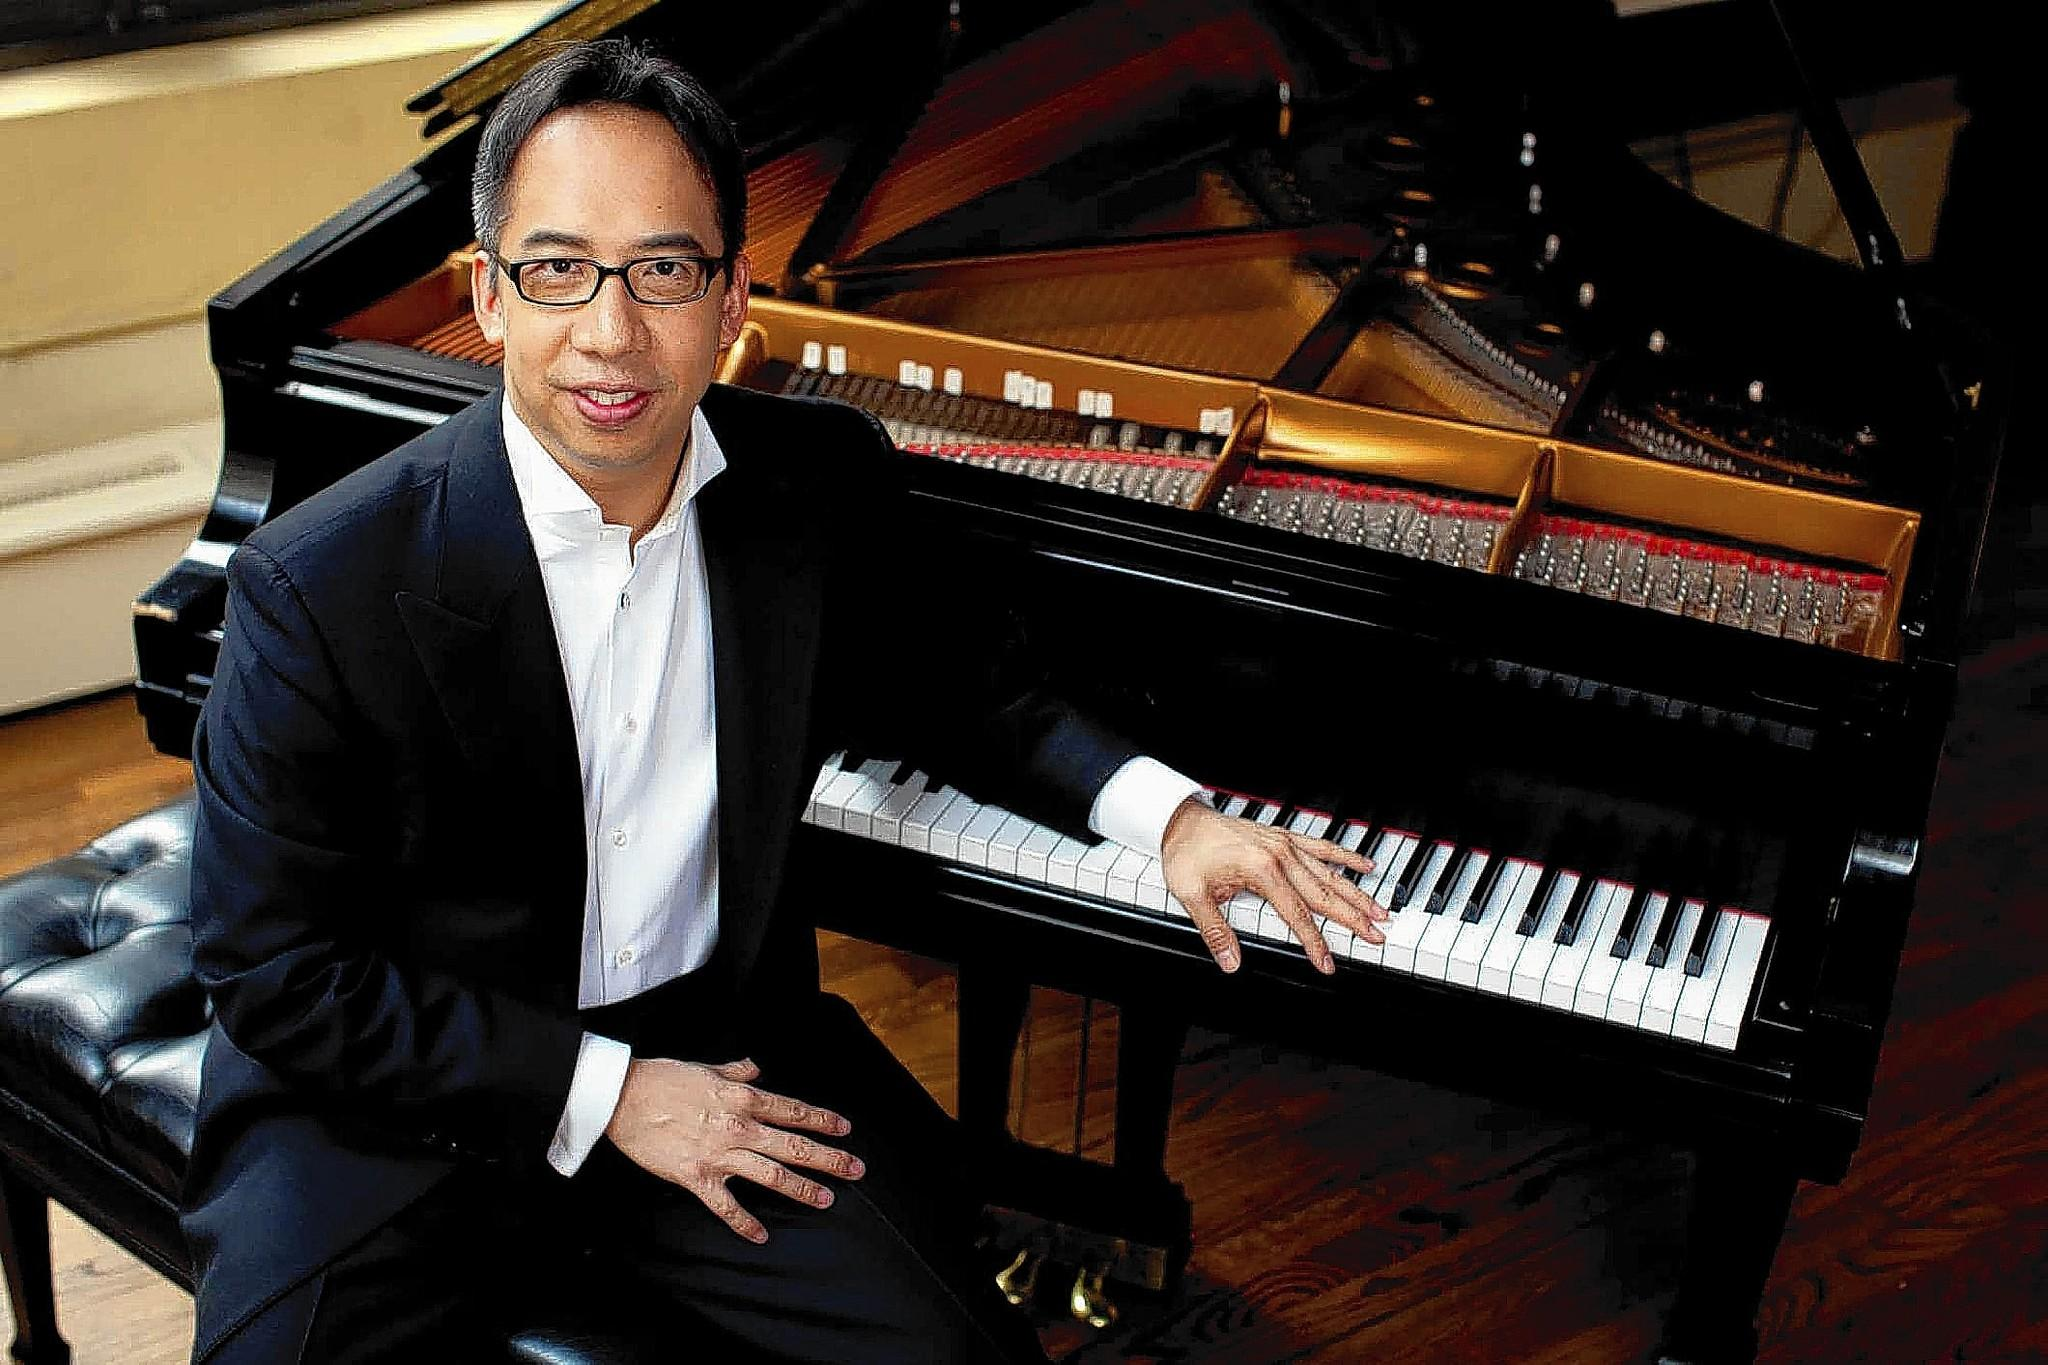 Pianist Joel Fan performs an all-Russian program Aug. 9 with the Russian Festival Chamber Orchestra at Music at Gretna at the Mt. Gretna Playhouse.